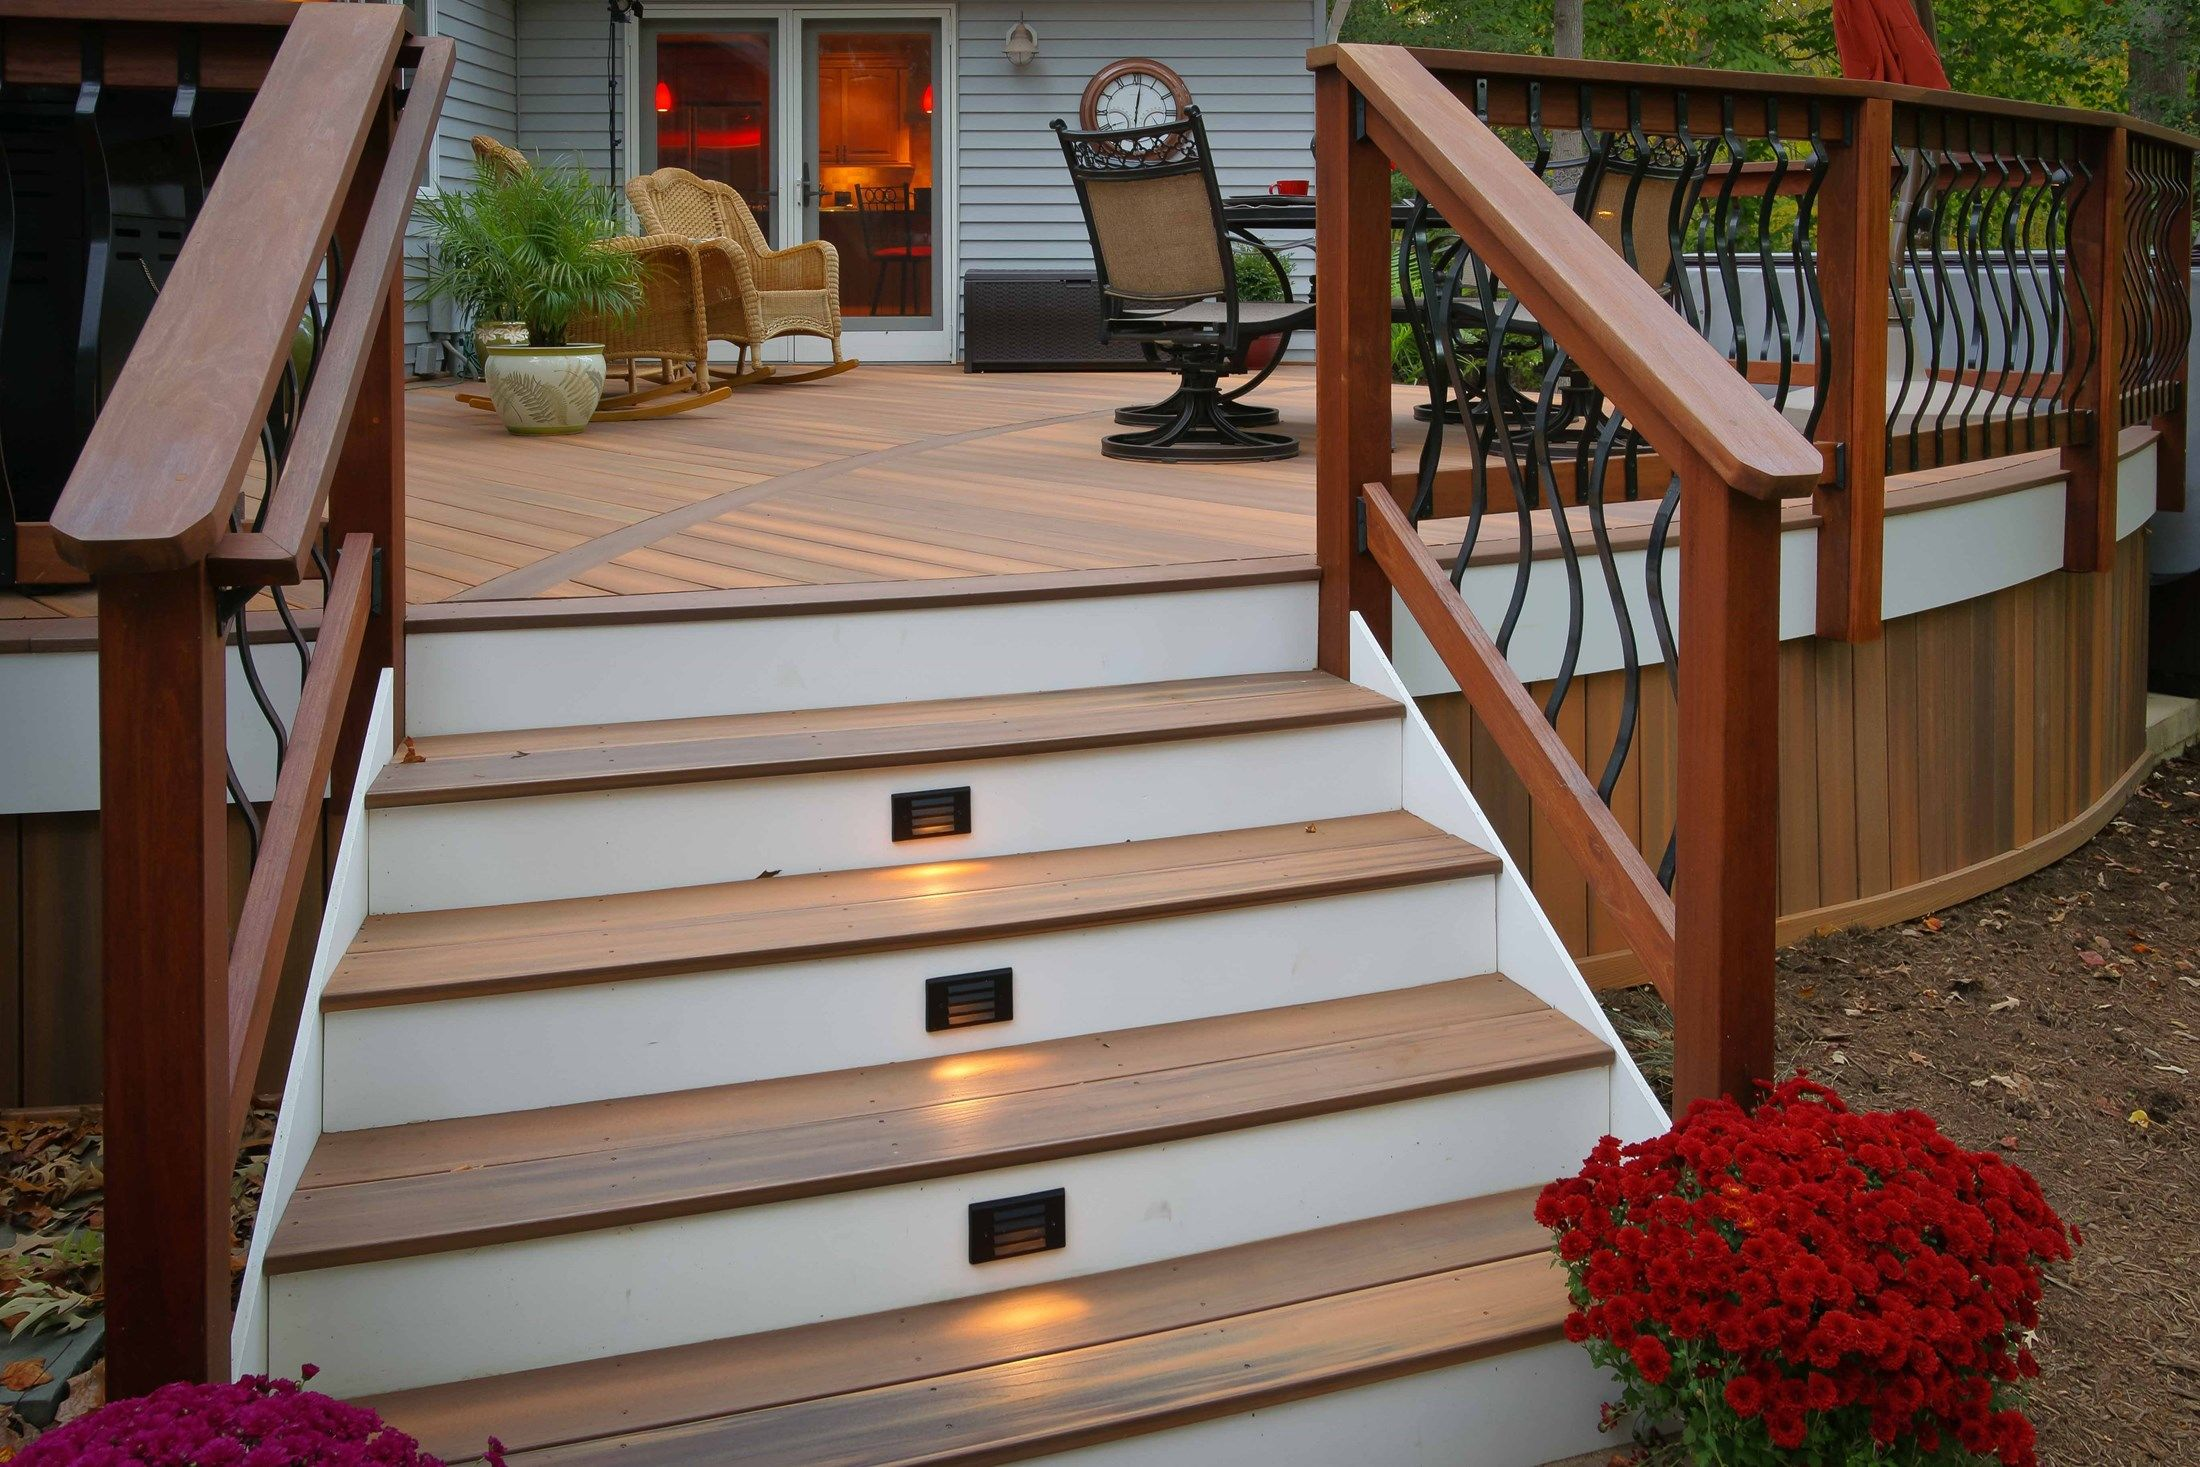 Davidson curved deck - Picture 1426